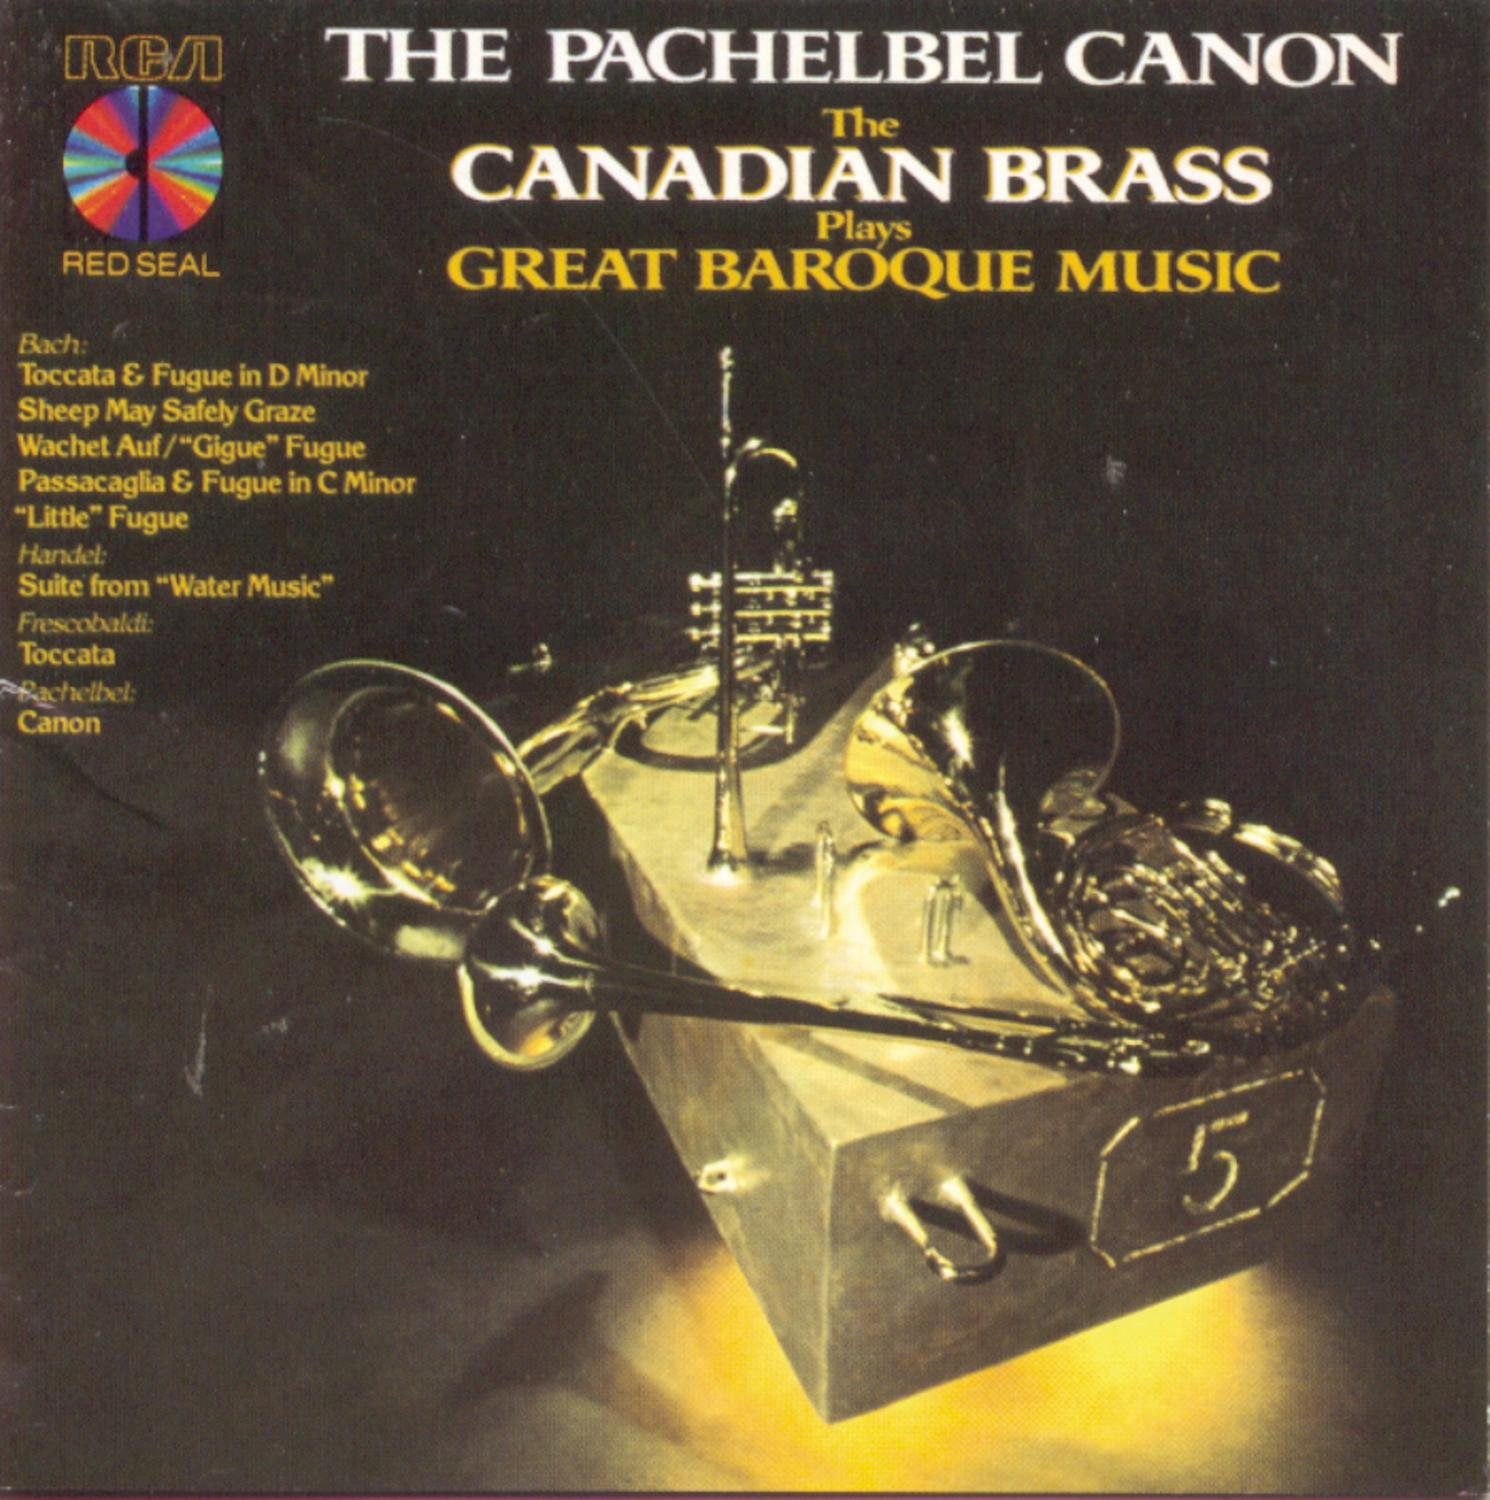 The Canadian Brass Plays the Pachelbel Canon - Great Baroque Music